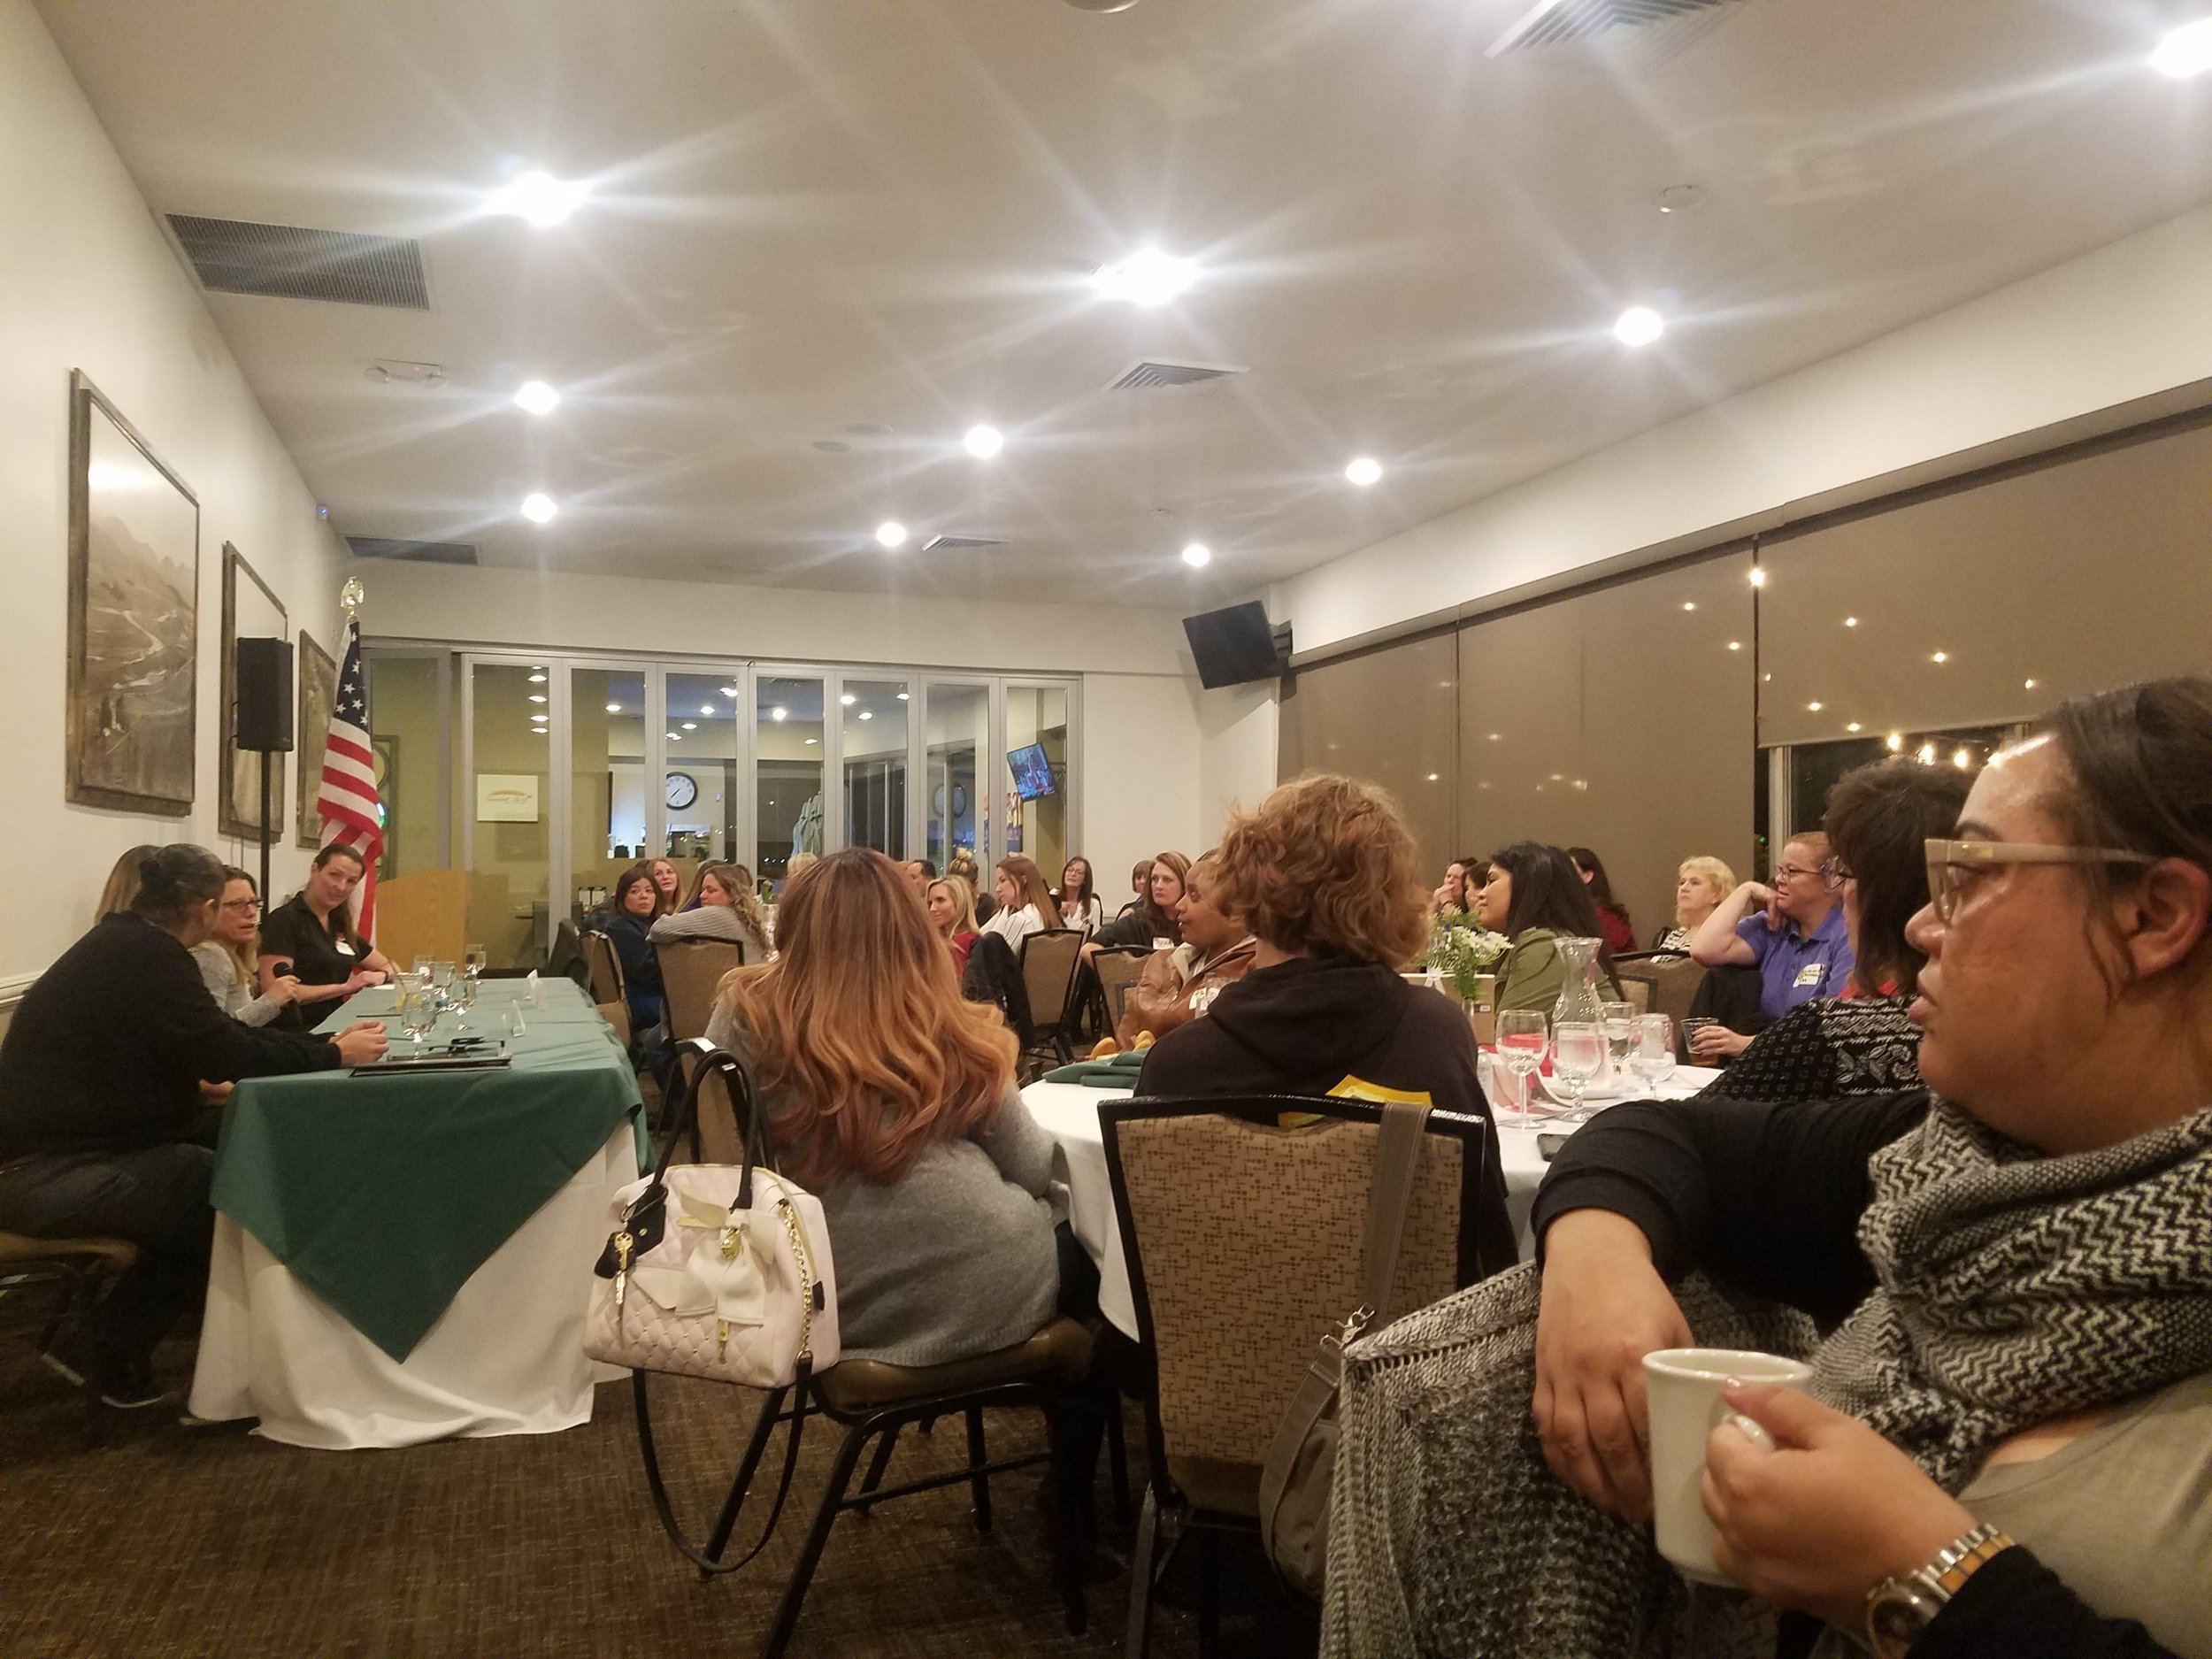 Banquet room full of women sitting at tables.